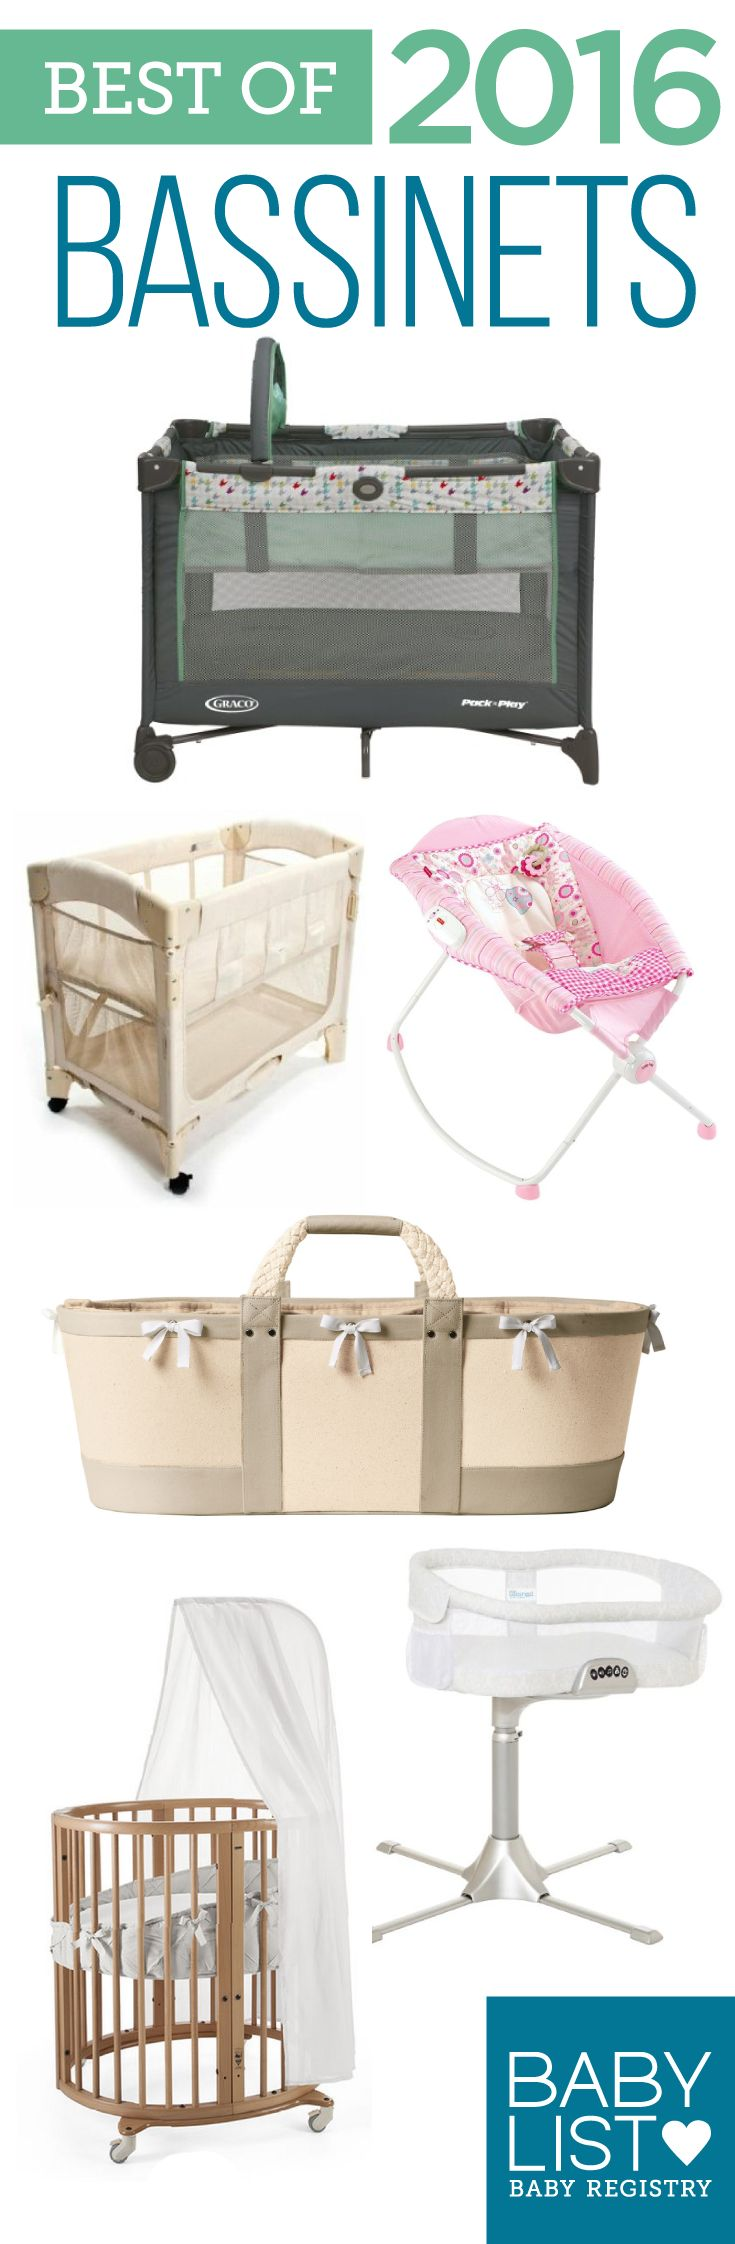 Need some bassinet advice to help you pick out the best one? Here are the 6 best bassinets of 2016- based on our own research + input from thousands of parents. There's no one must-have bassinet. Every family is different. Use this guide to help you figure out the best crib for your family's needs and priorities.